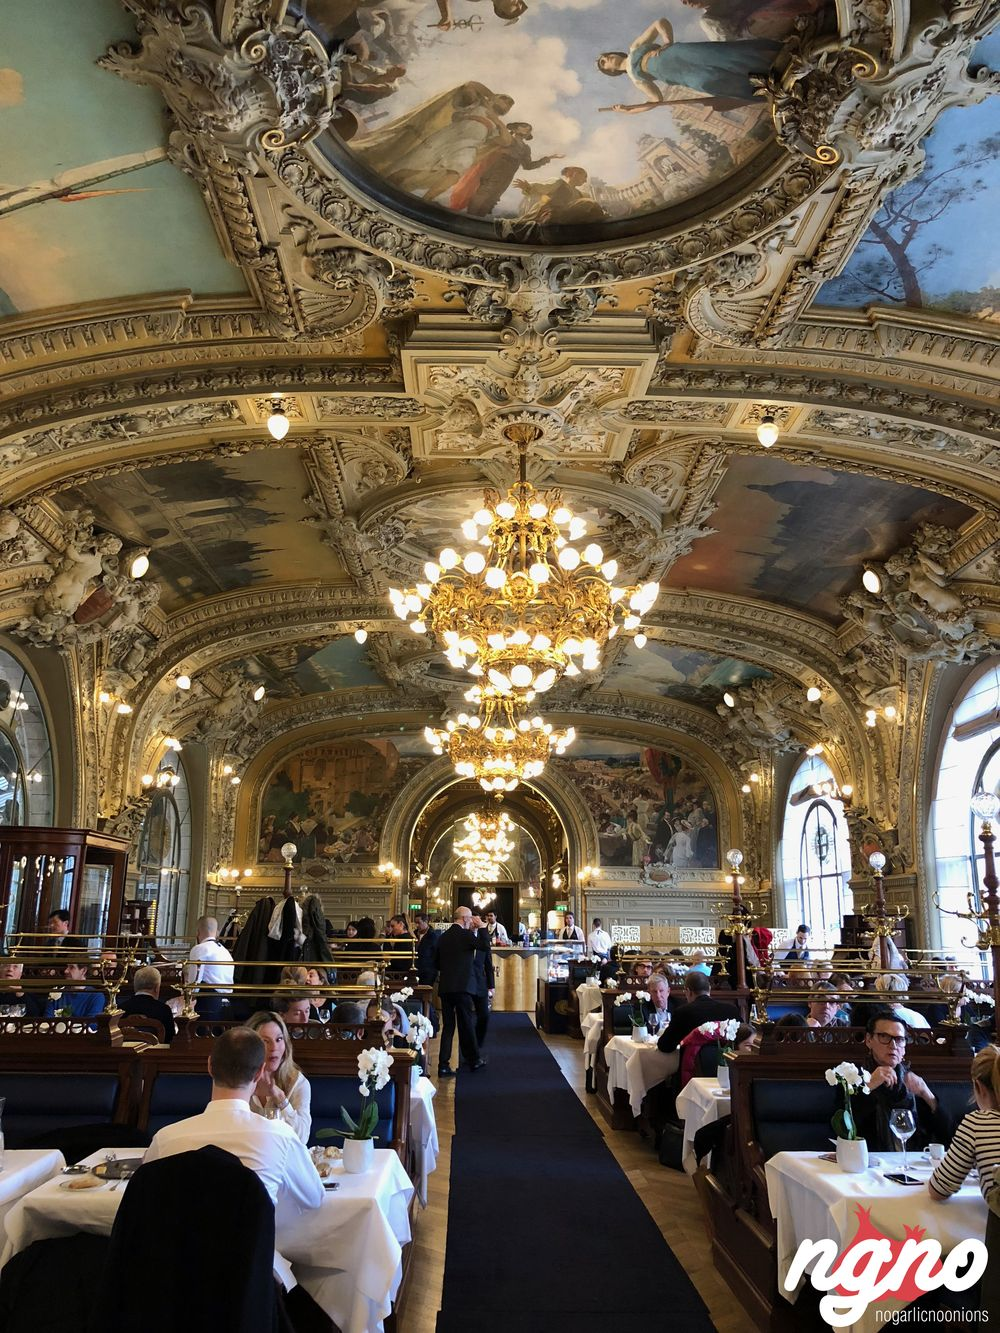 le-train-bleu-gare-lyon-paris-nogarlicnoonions812017-11-13-08-04-36